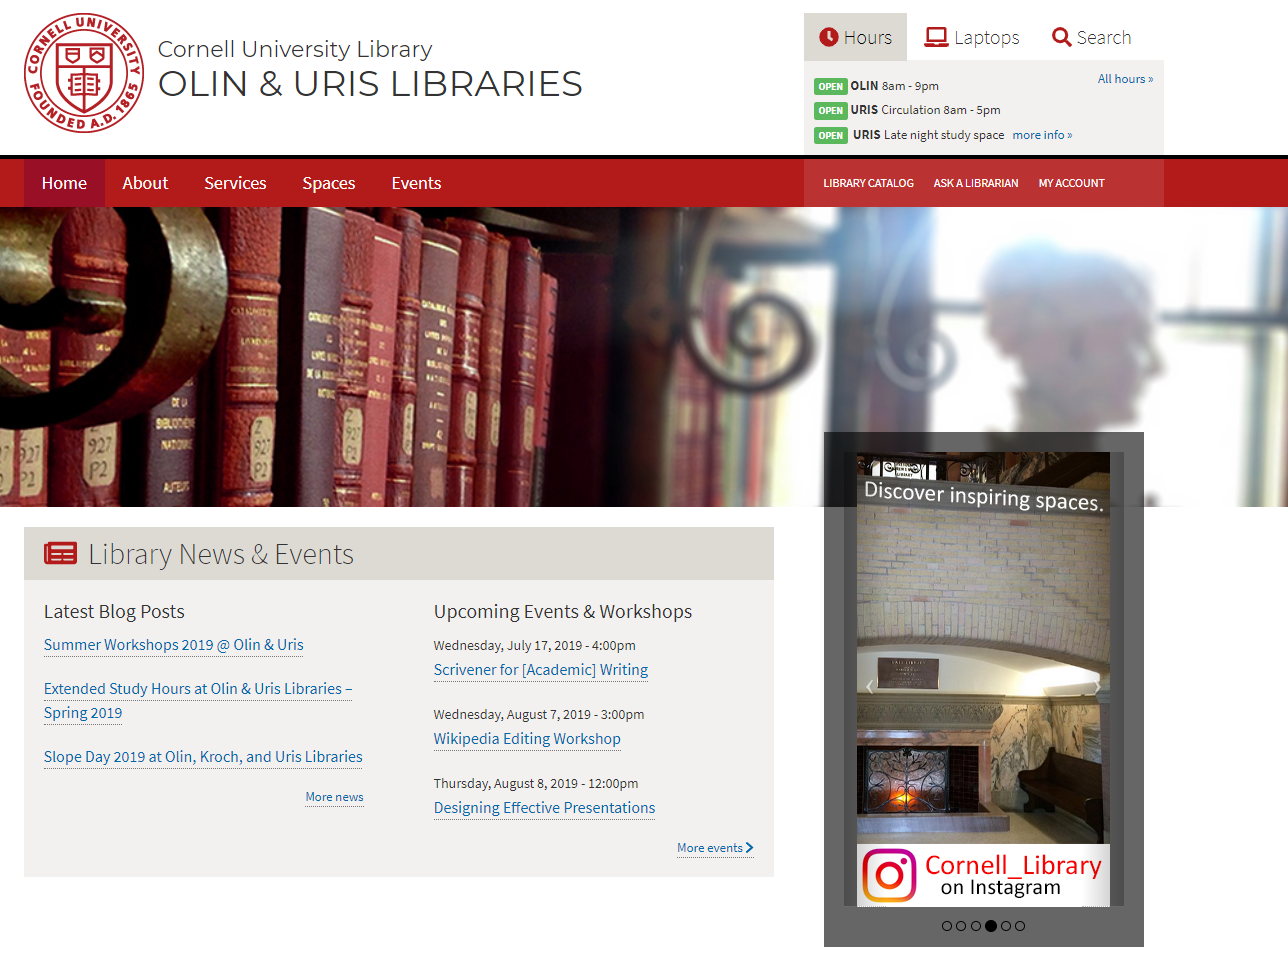 Image: screen shot of Olin and Uris Libraries' home page with link